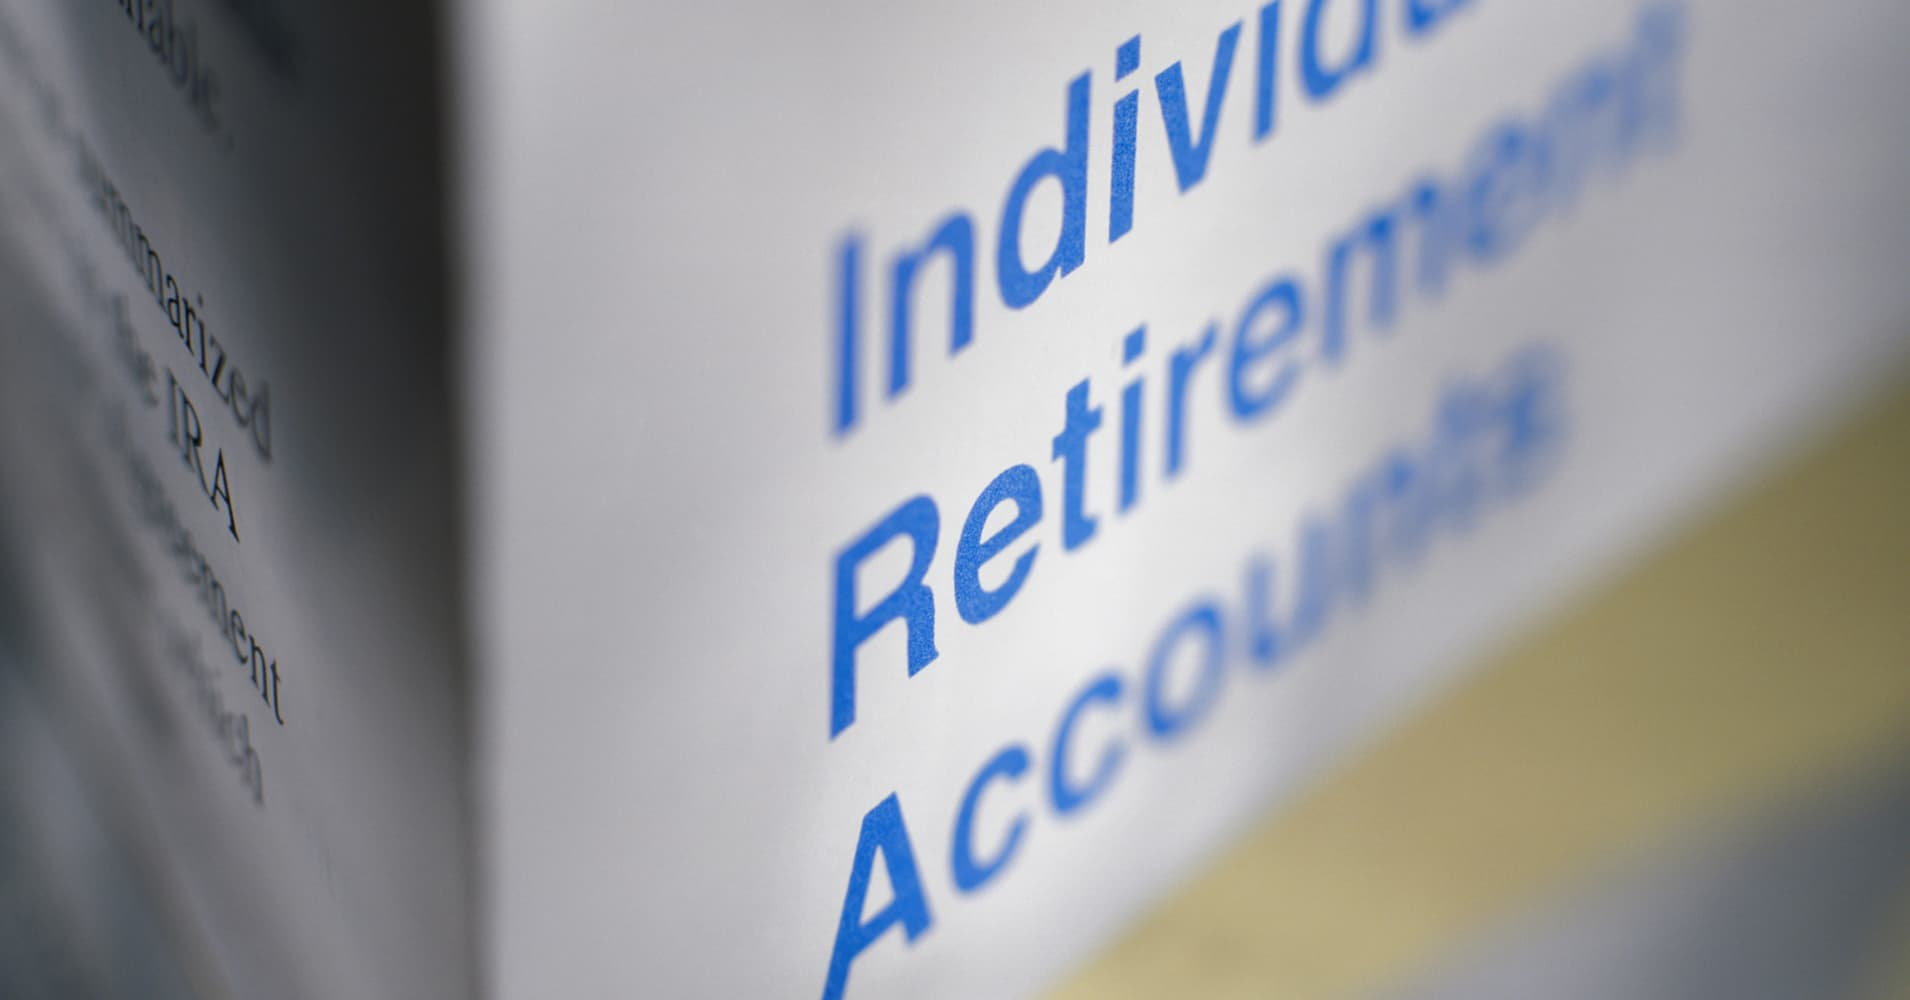 Traditional or Roth IRA? Choosing the one that's right for you